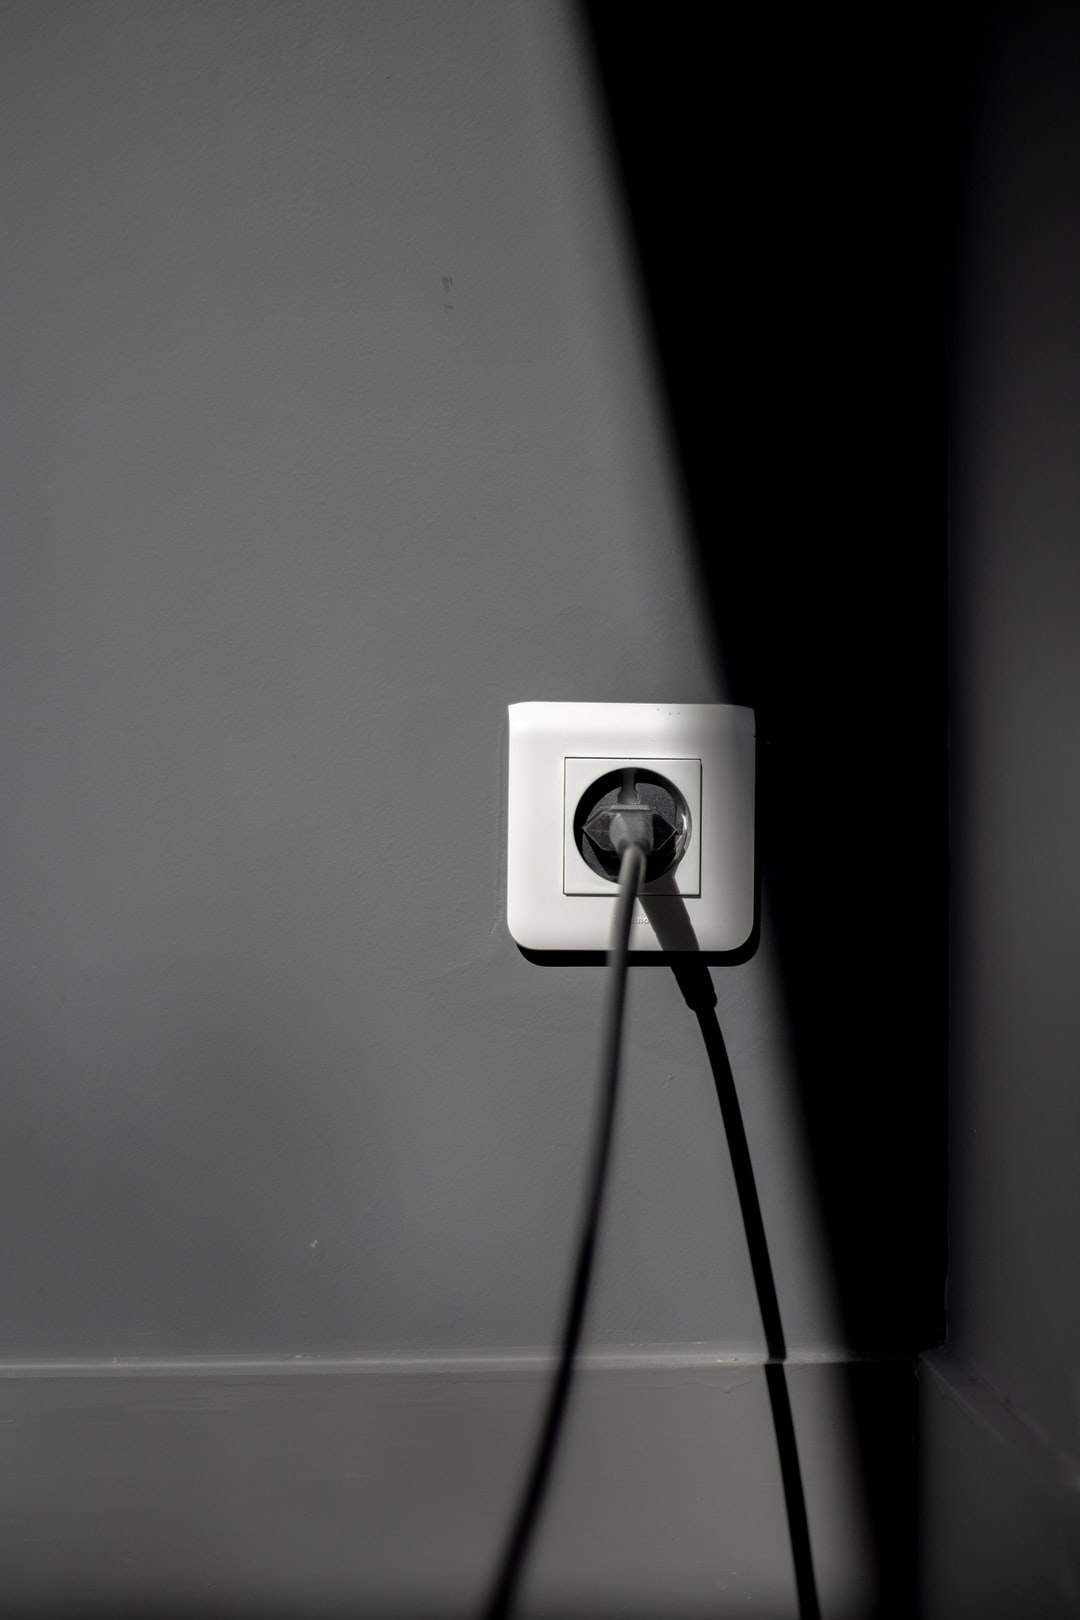 Electricity, black and white.